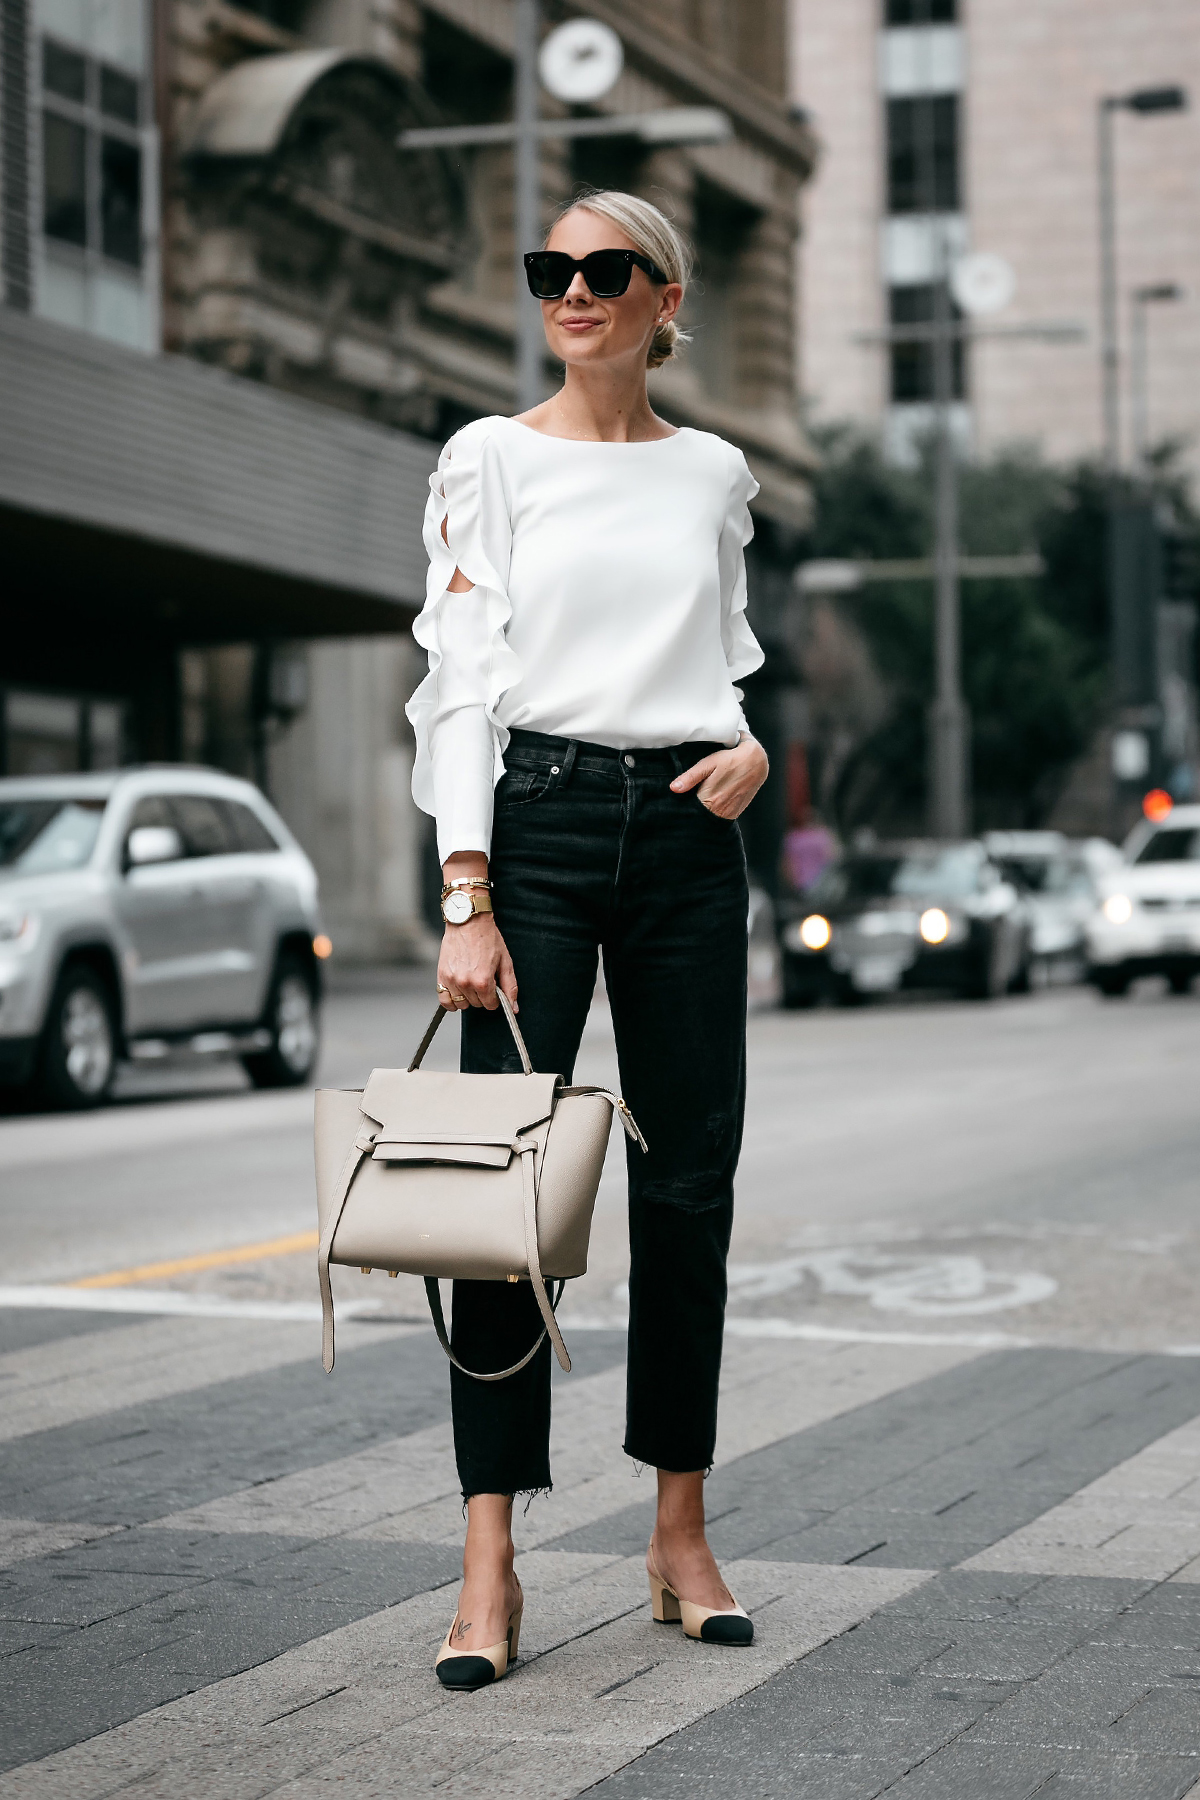 Blonde Woman Wearing Club Monaco White Ruffle Sleeve Top Frame Black Ripped Boyfriend Jeans Outfit Celine Belt Bag Chanel Slingbacks Fashion Jackson Dallas Blogger Fashion Blogger Street Style